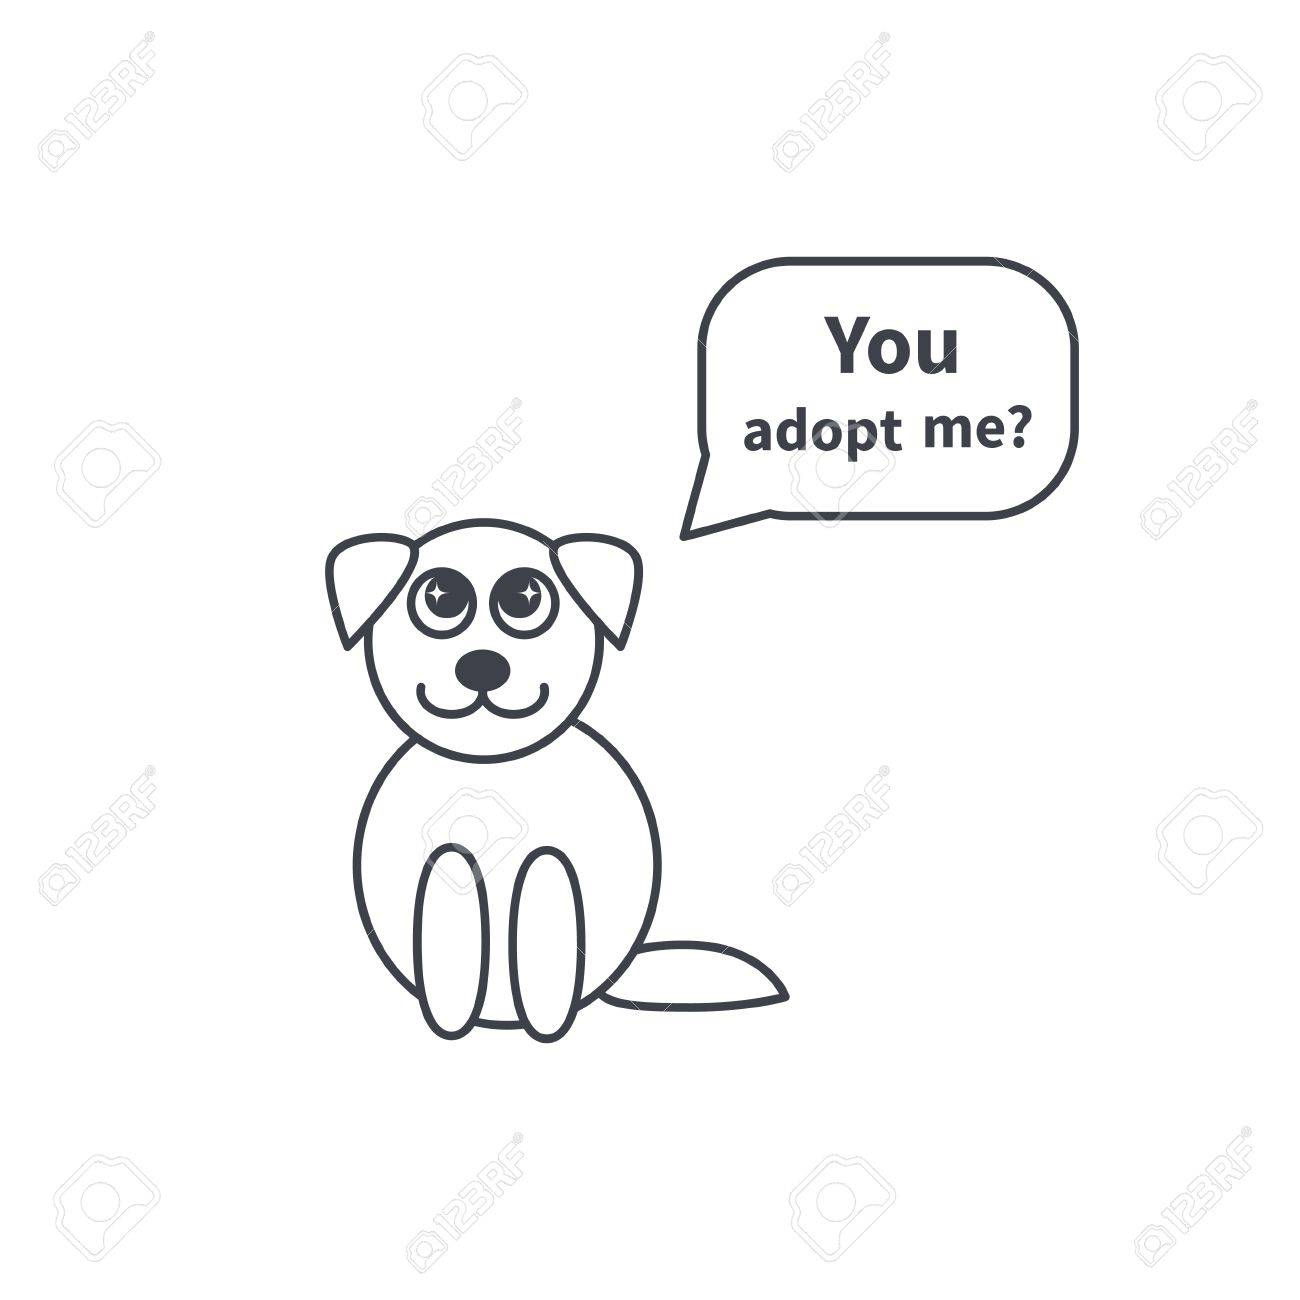 Little Cute Puppy Asks Adopt It. Image With Speech Bubble. Dog ...